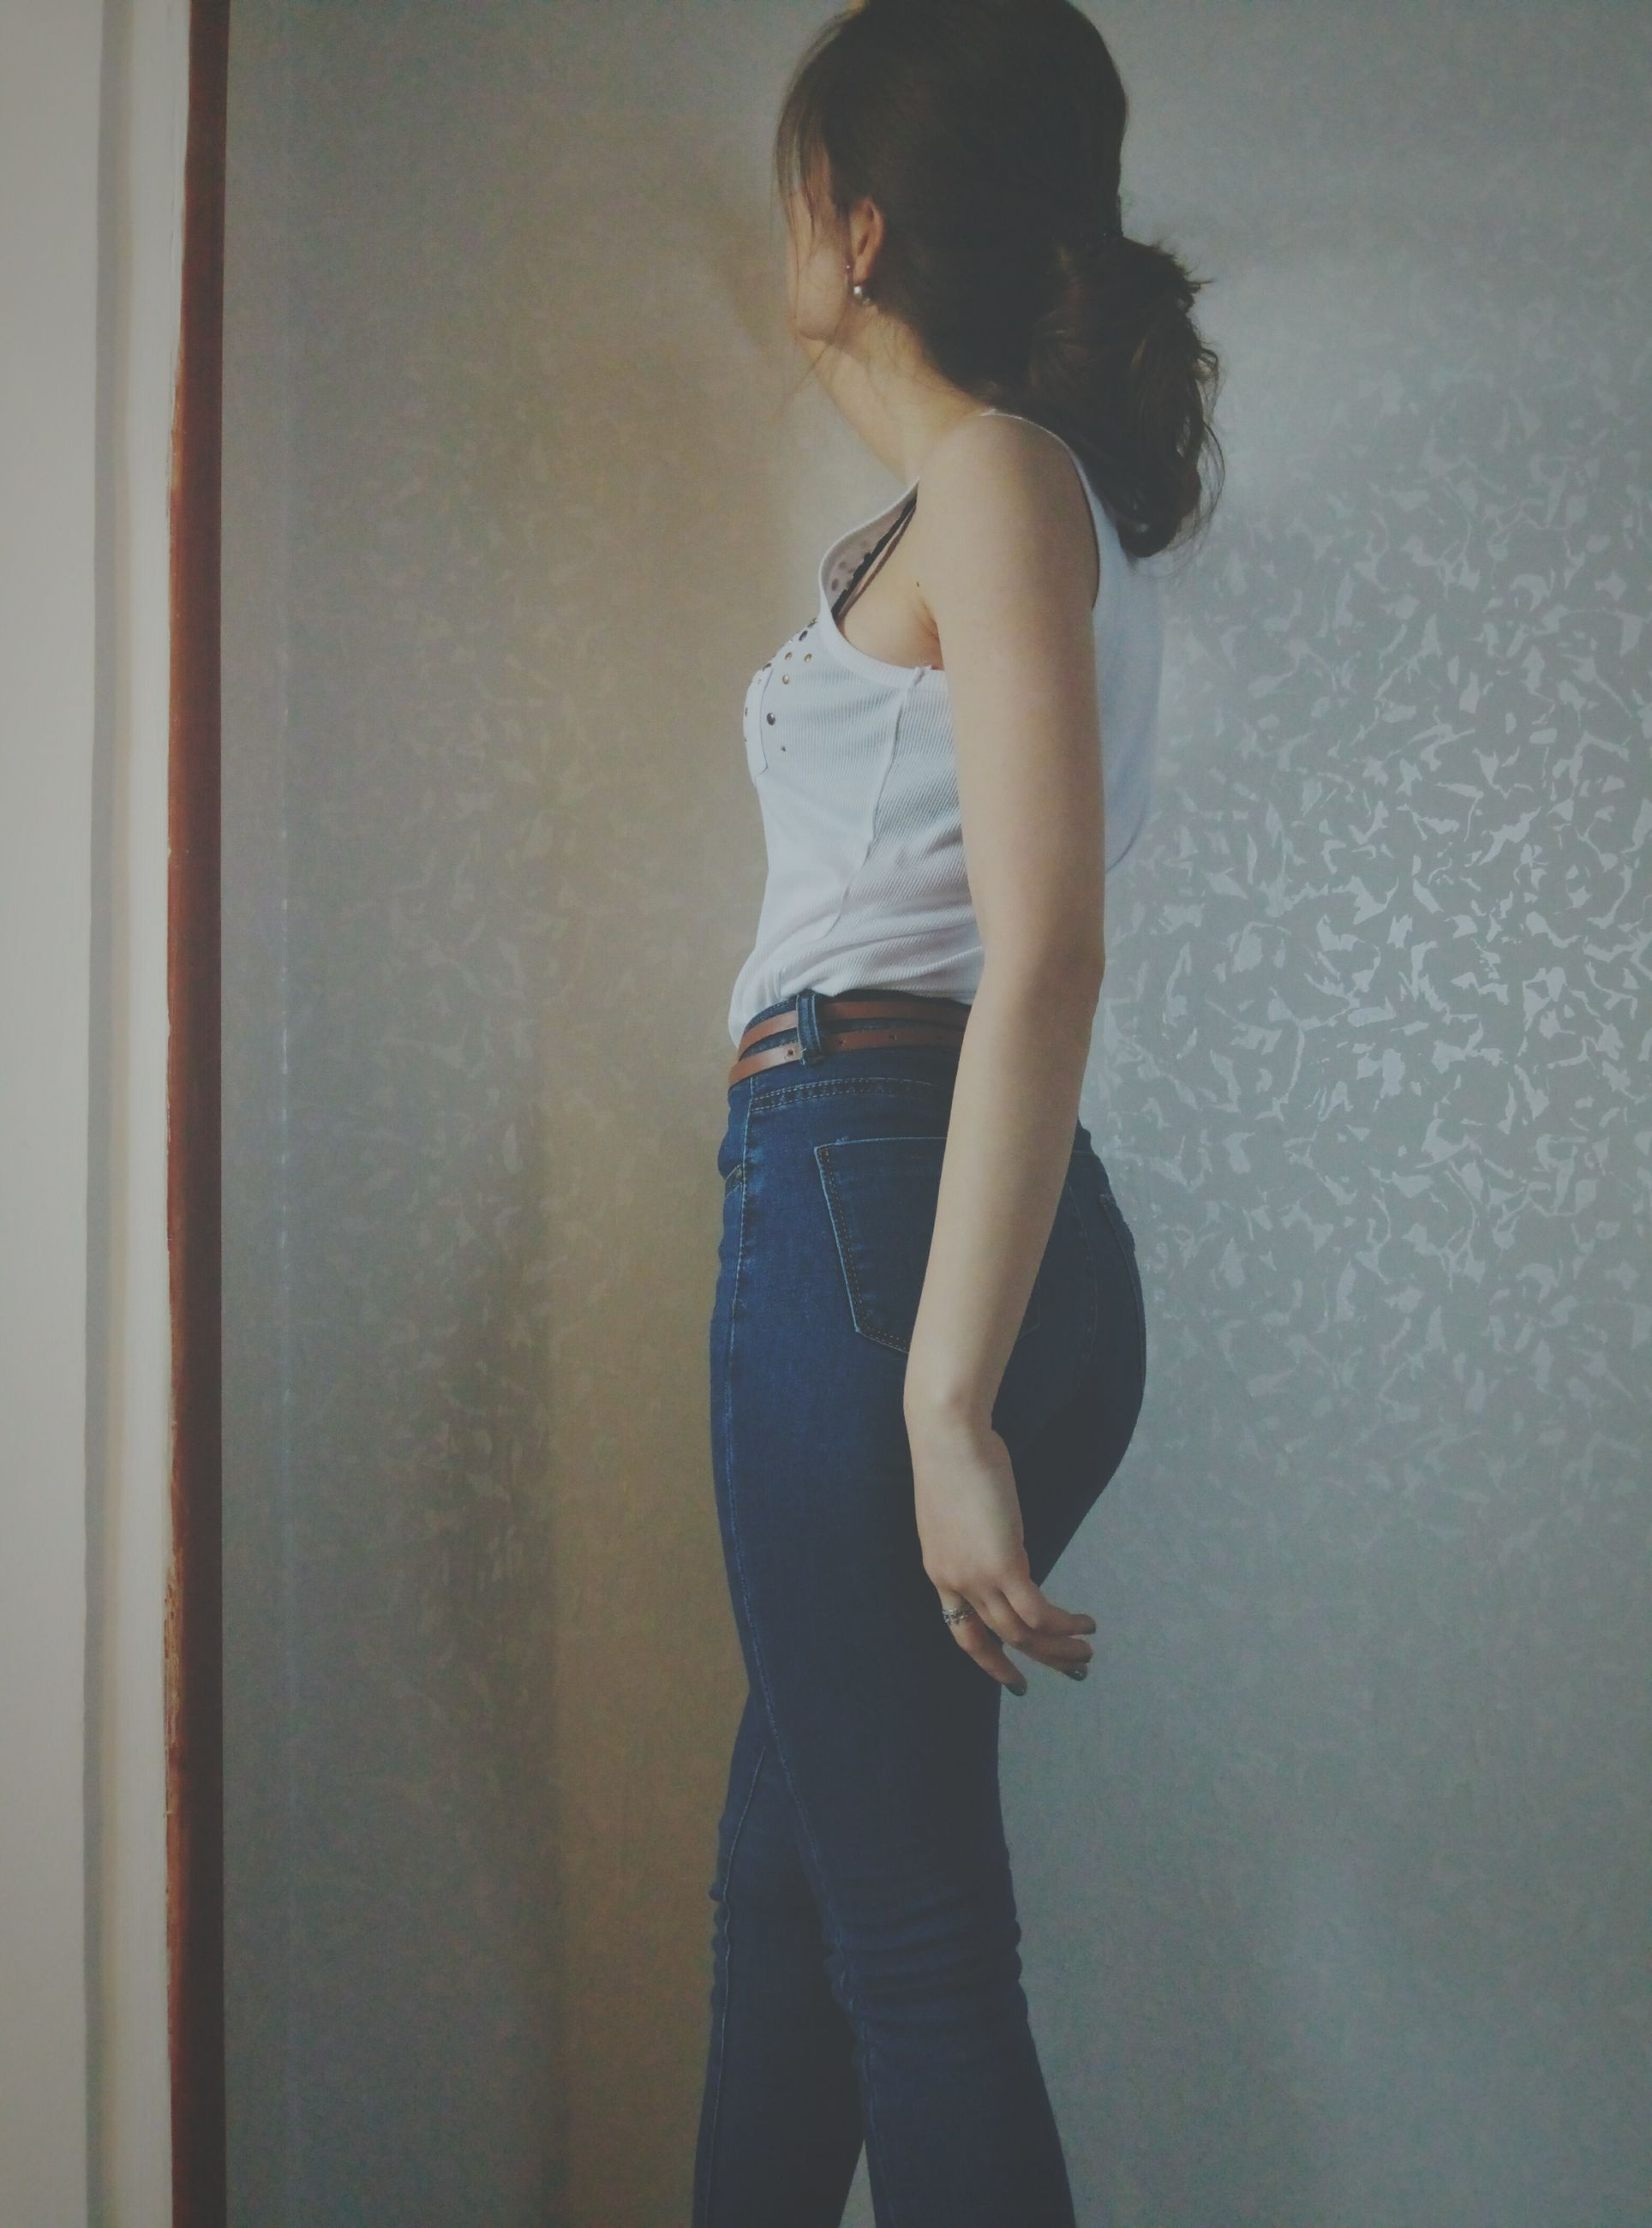 pregnant, standing, contemplation, real people, lifestyles, one person, three quarter length, indoors, women, day, people, one woman only, human abdomen, abdomen, human fertility, adult, adults only